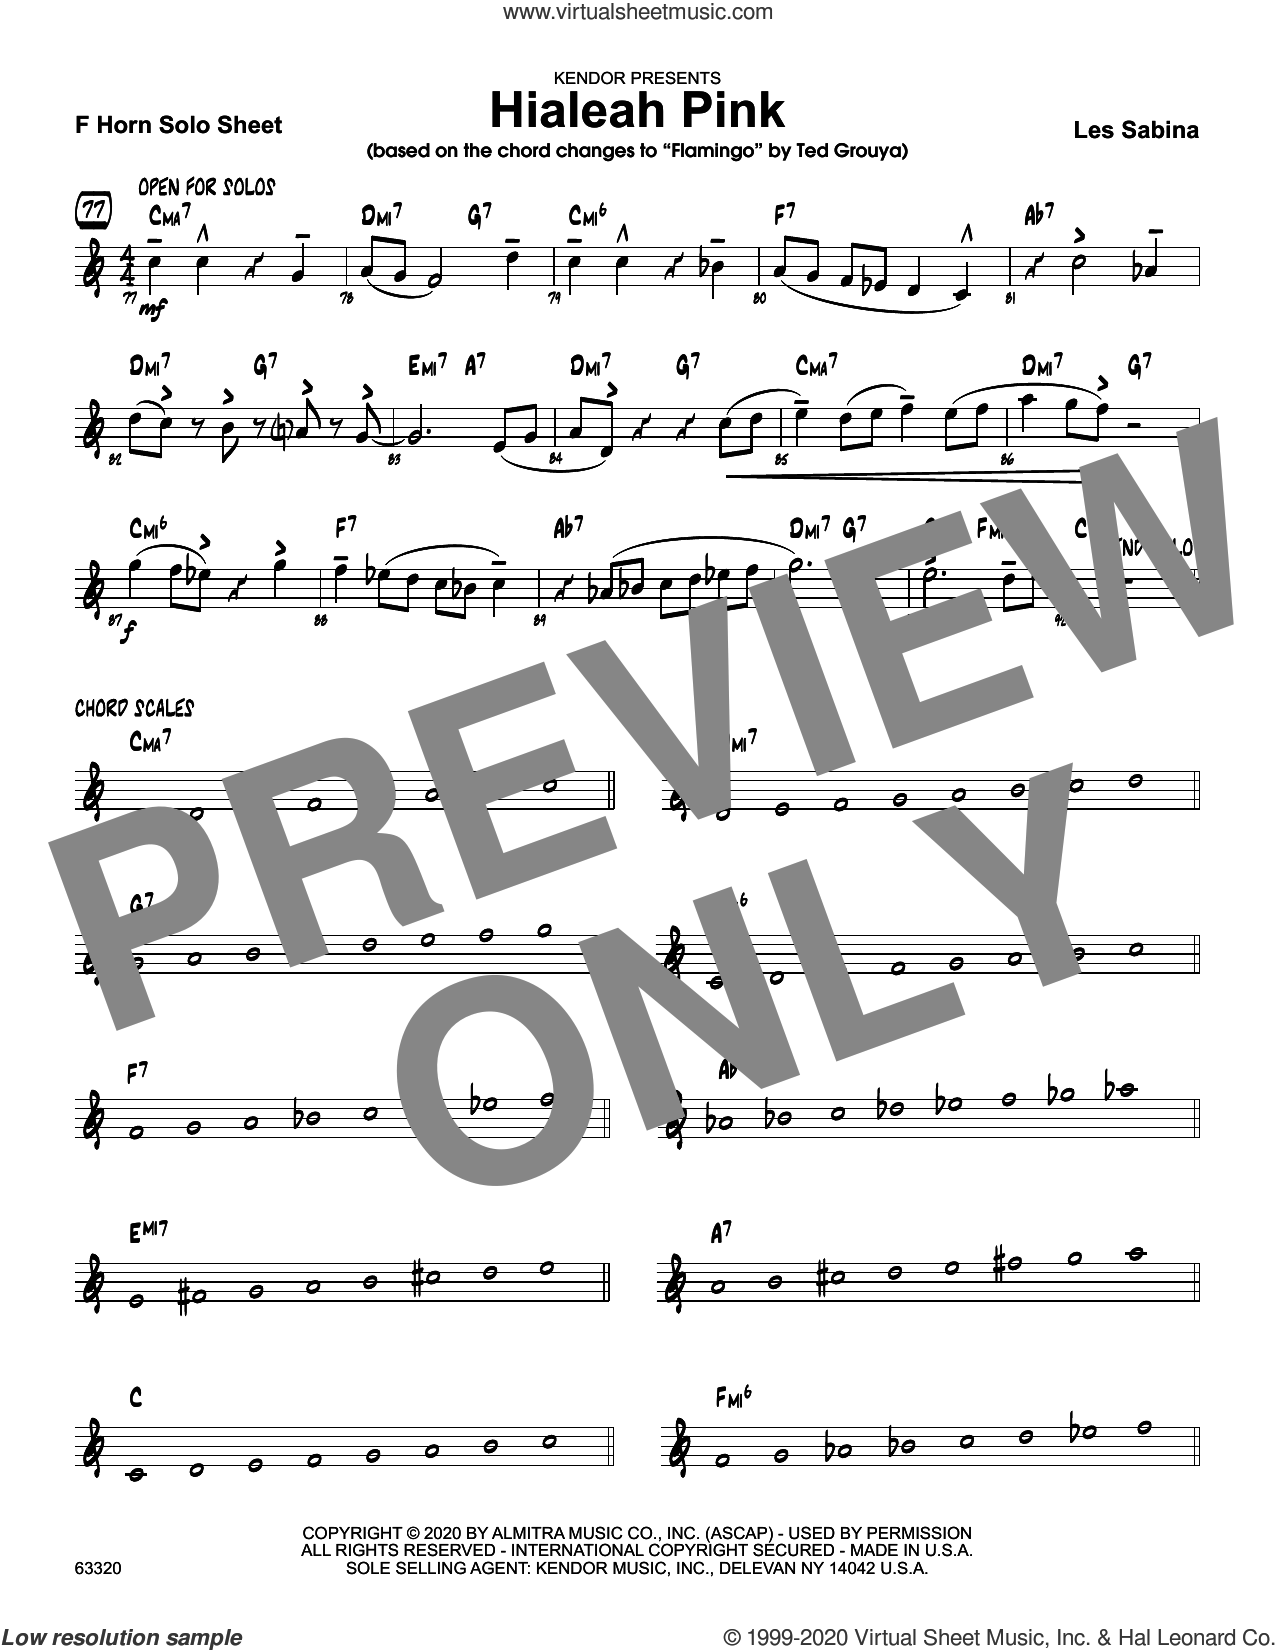 Hialeah Pink, solo sheet sheet music for jazz band (solo sheet - trumpet) by Les Sabina, intermediate skill level